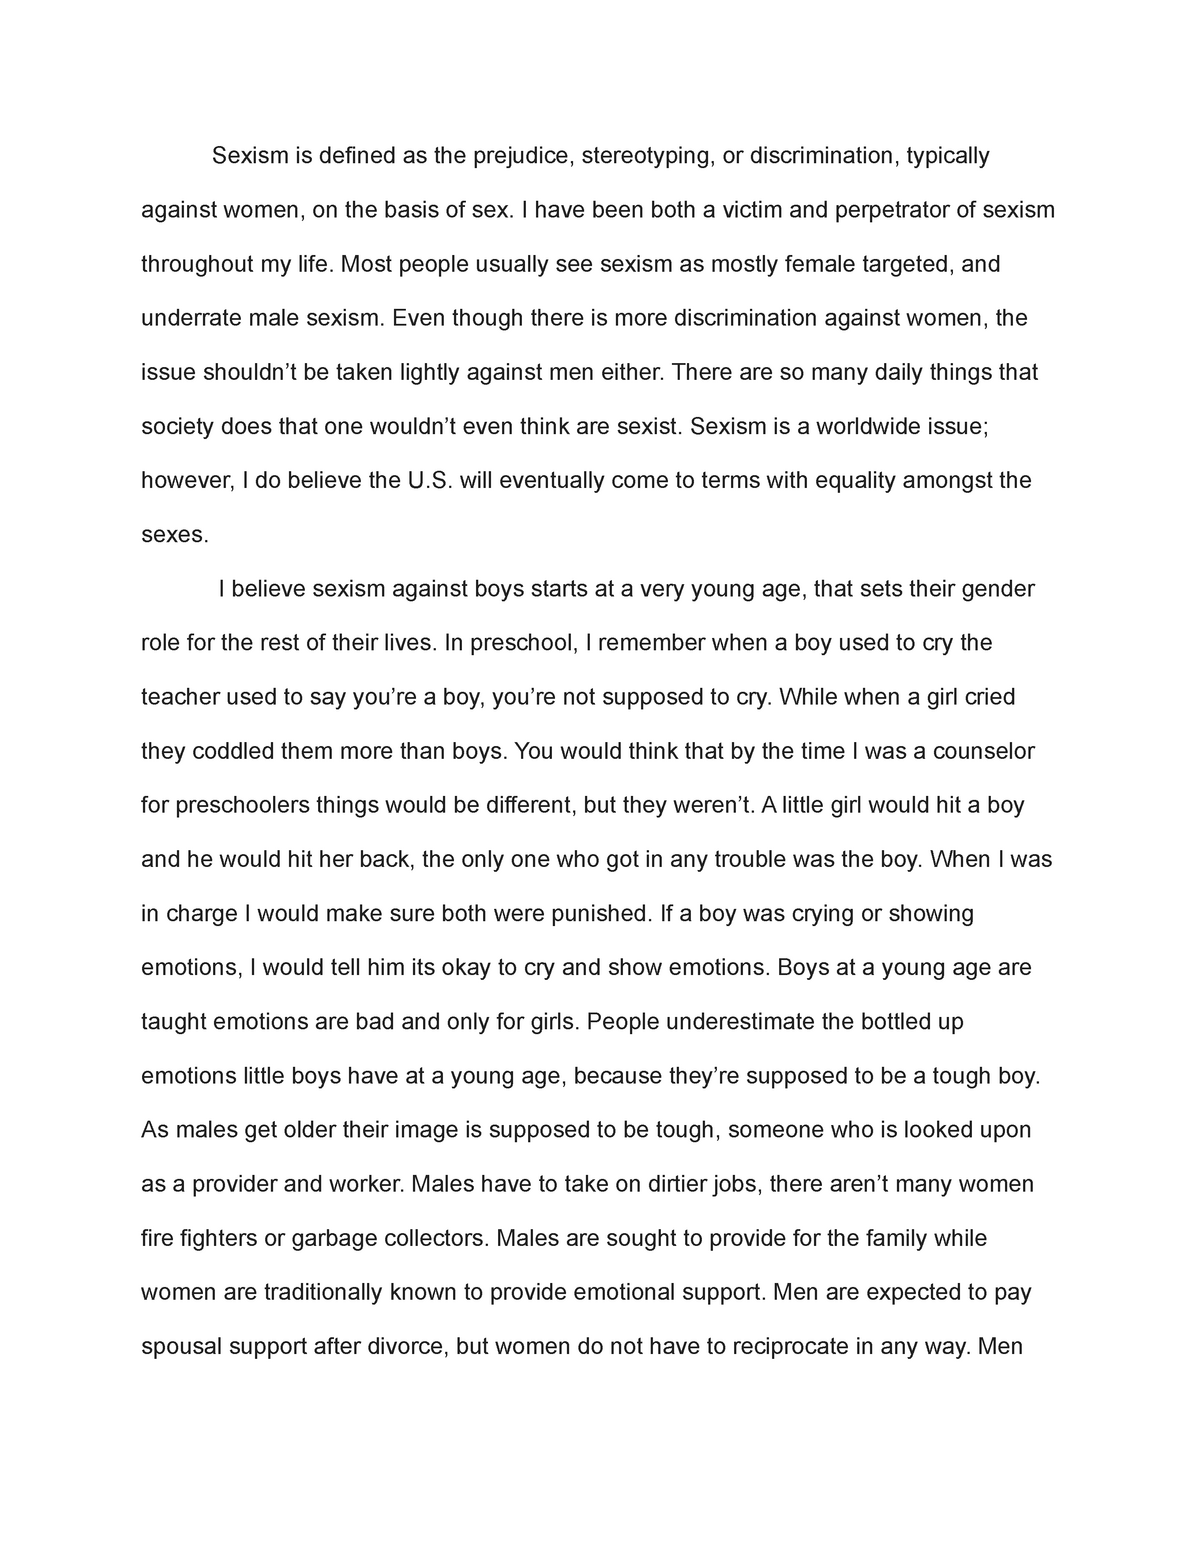 ≡Essays on Sexism. Free Examples of Research Paper Topics, Titles GradesFixer